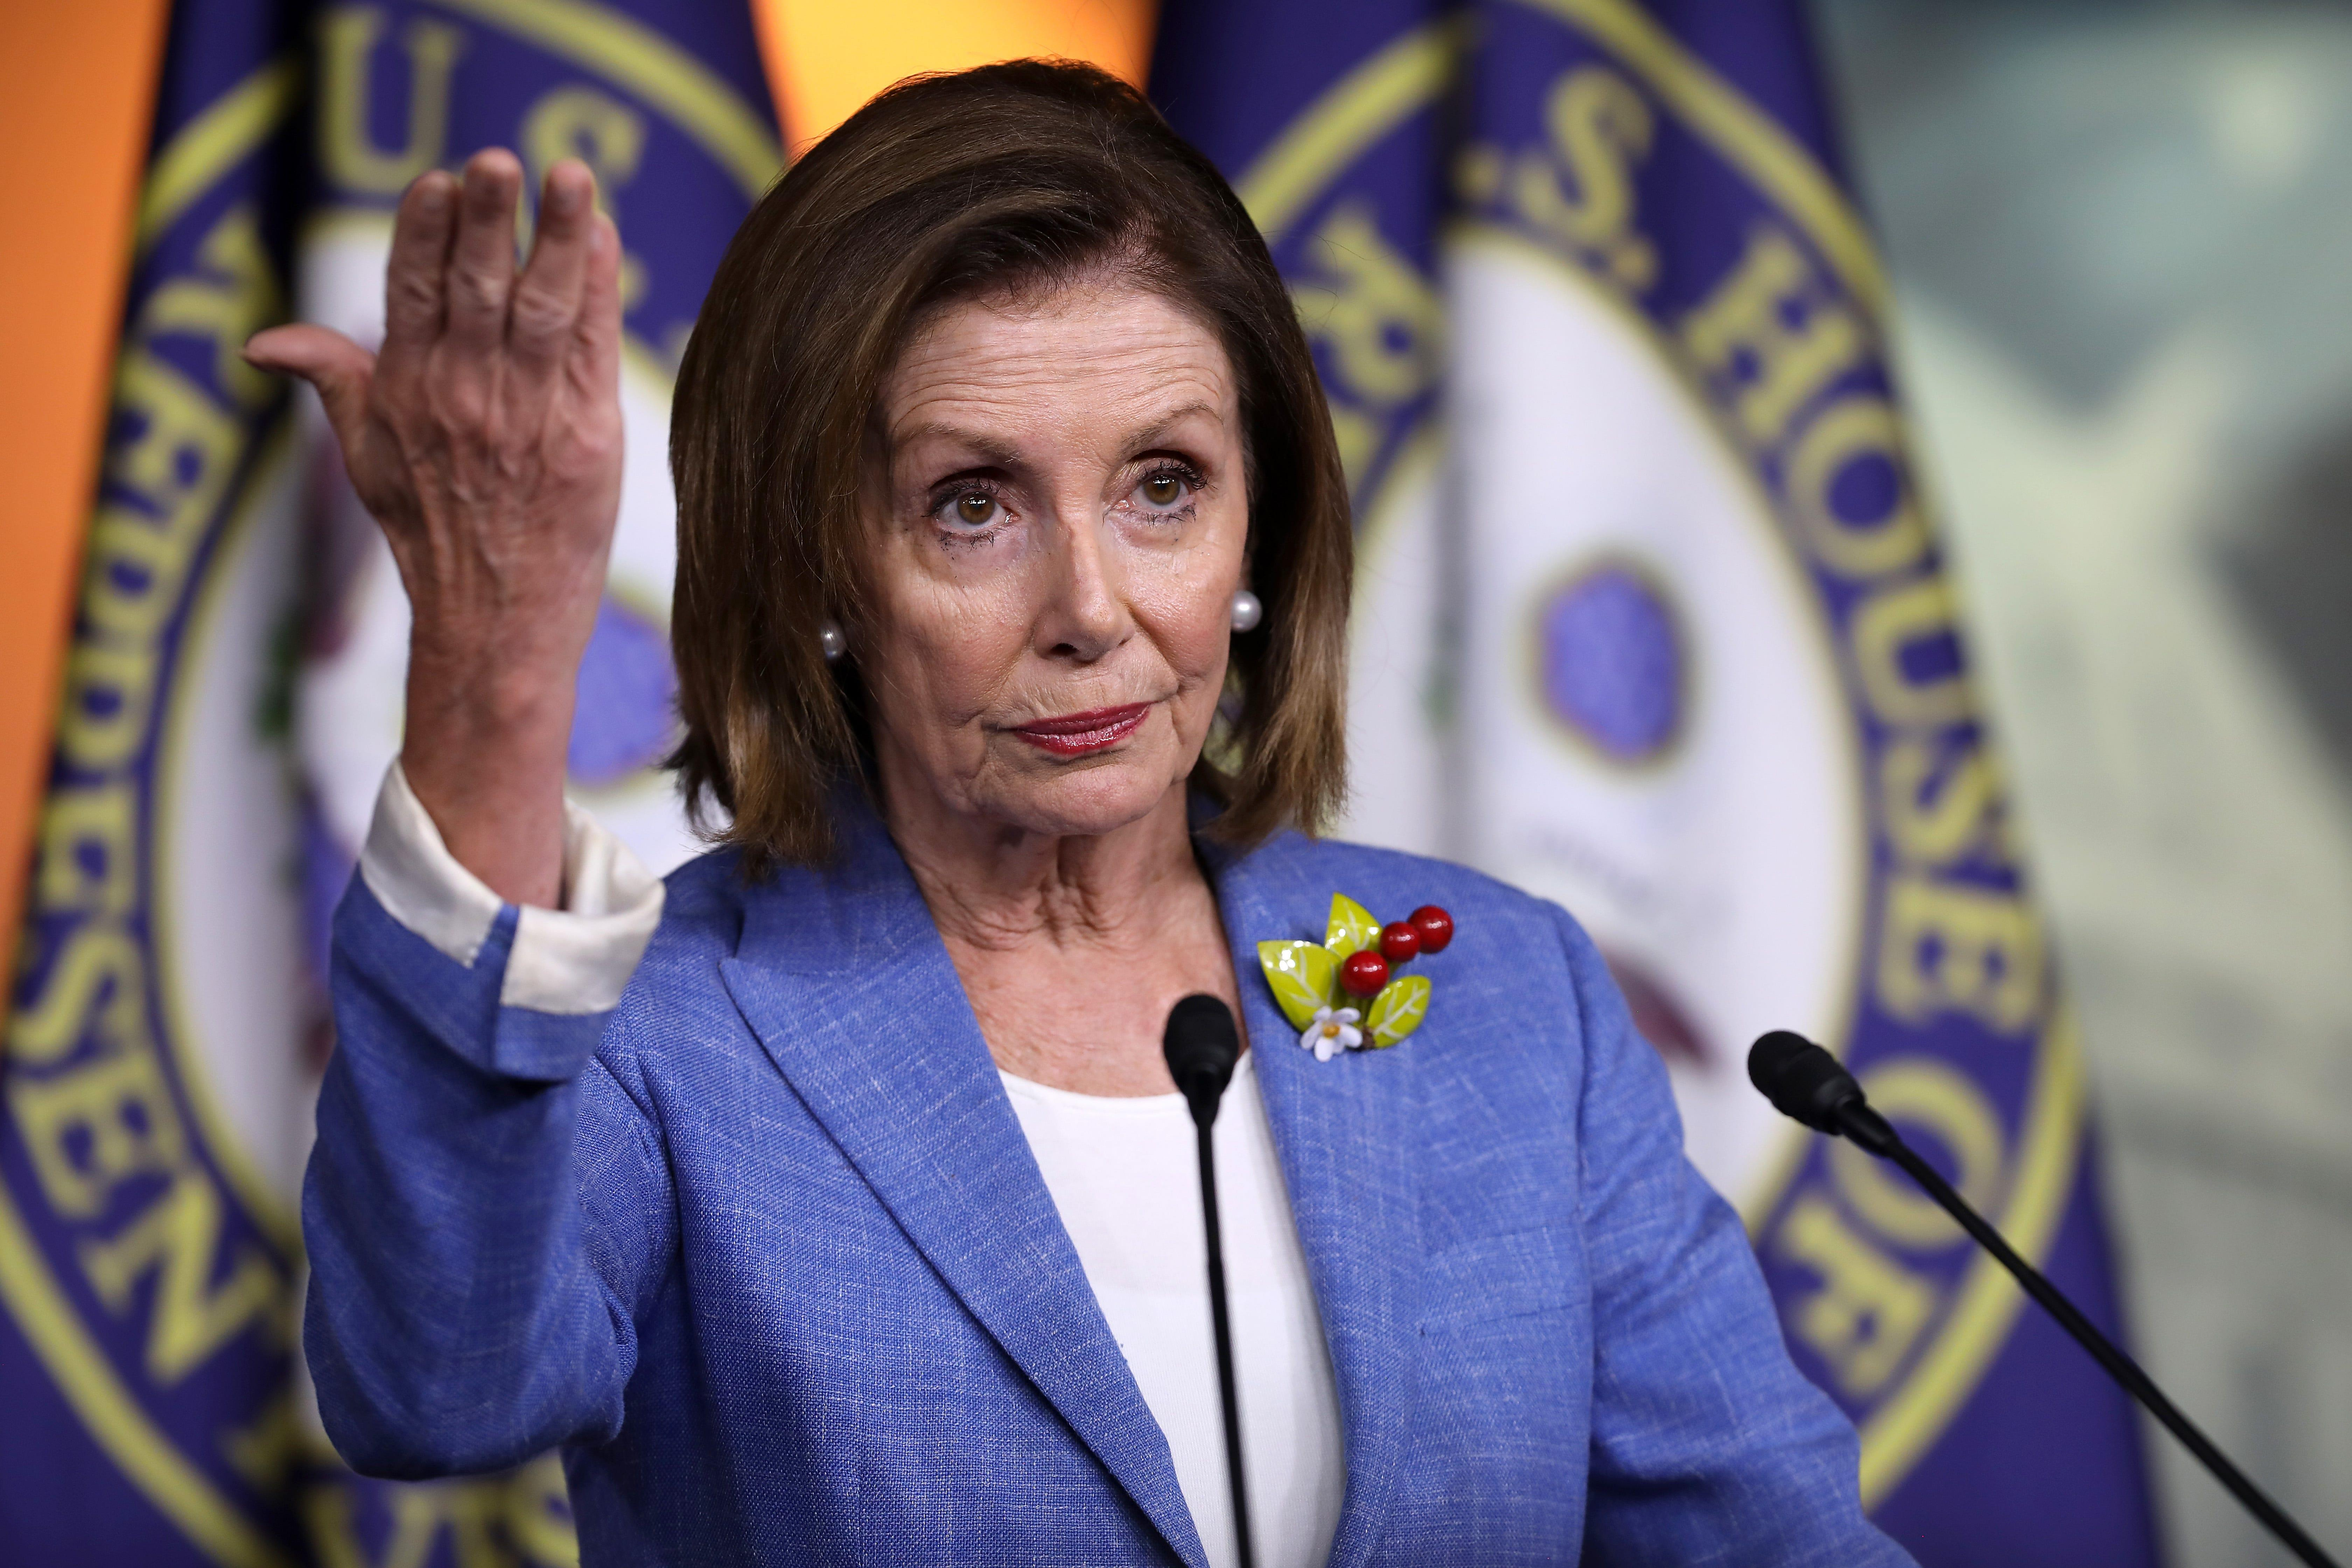 Pelosi calls McConnell 'Moscow Mitch' while criticizing inaction on legislation